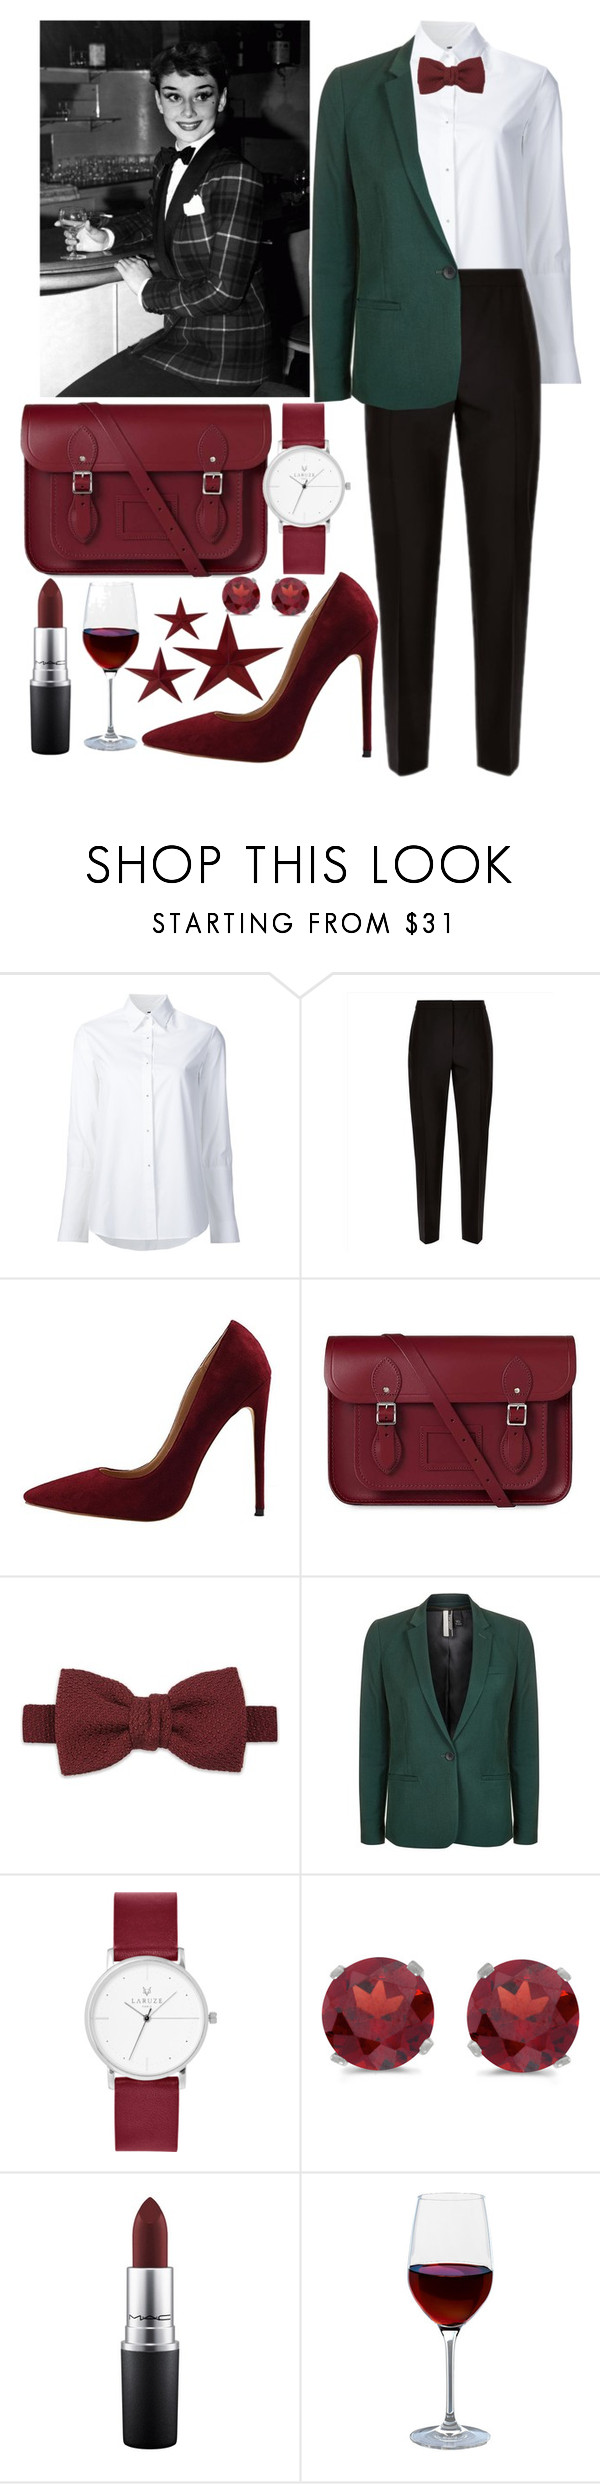 """Без названия #145"" by marcupayts ❤ liked on Polyvore featuring Misha Nonoo, Jaeger, The Cambridge Satchel Company, Lanvin, Topshop, BillyTheTree, MAC Cosmetics and Artland"